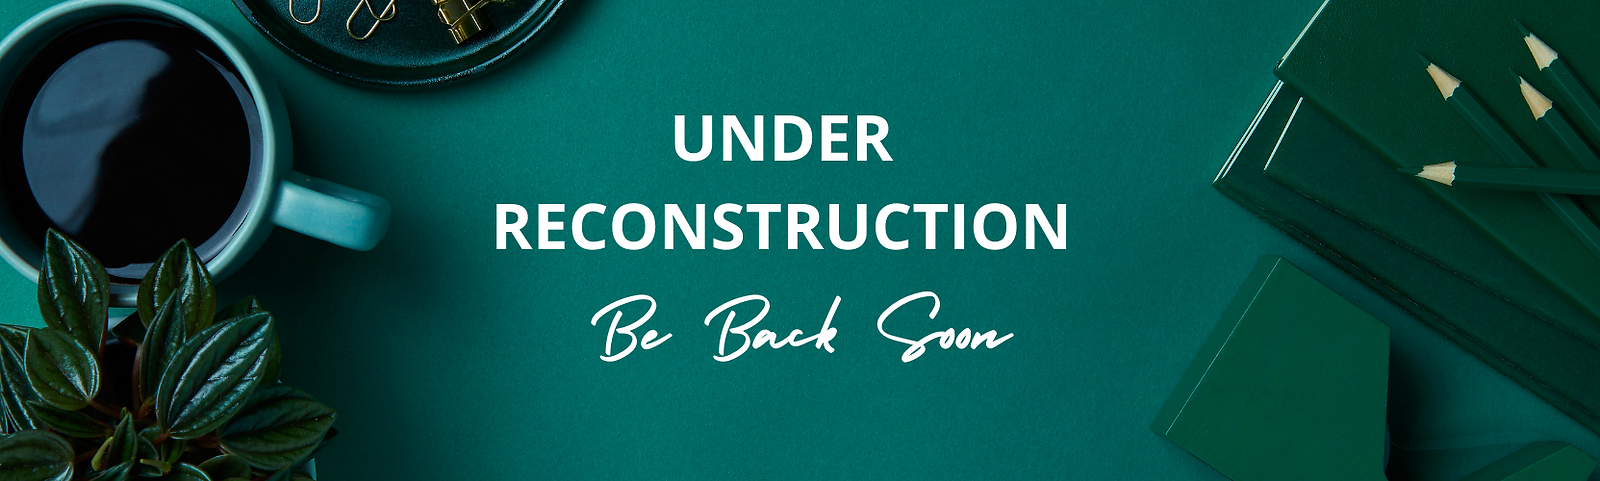 UNDER RECONSTRUCTION.png